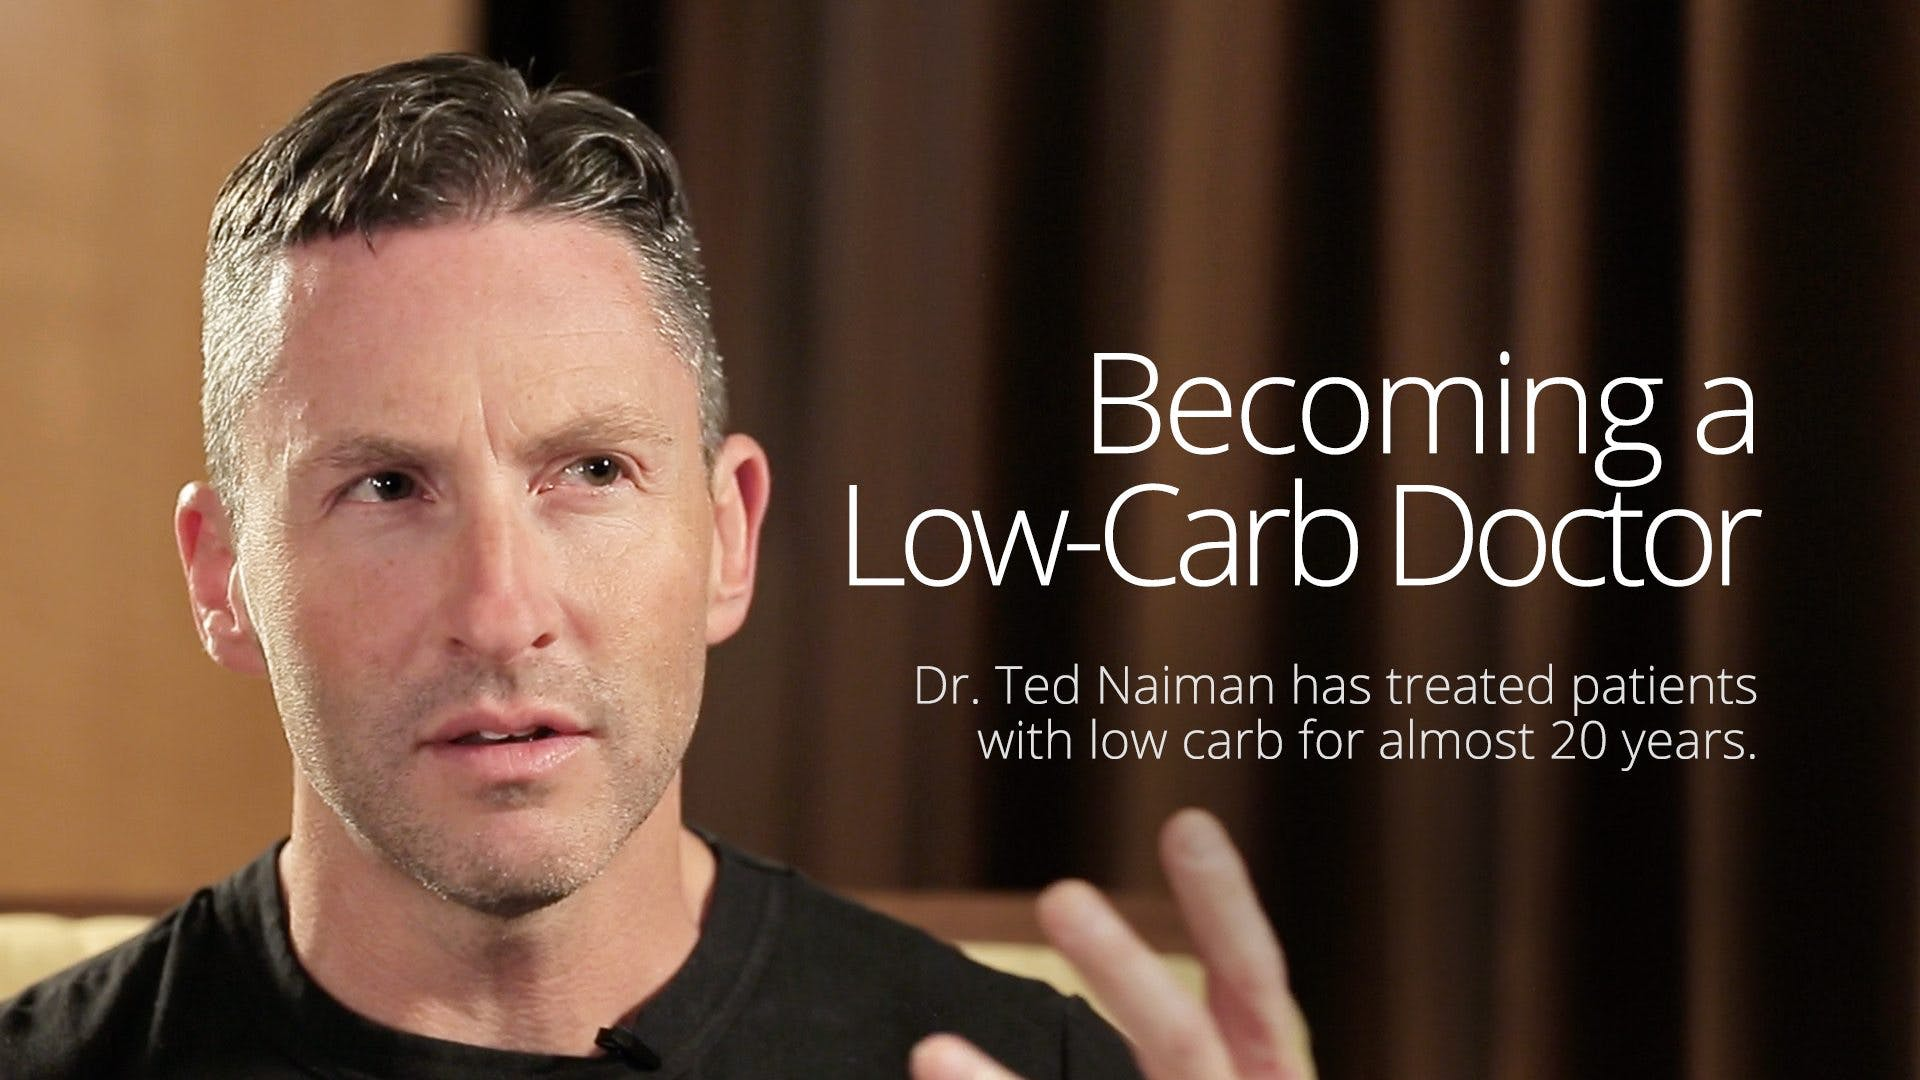 Becoming a low-carb doctor